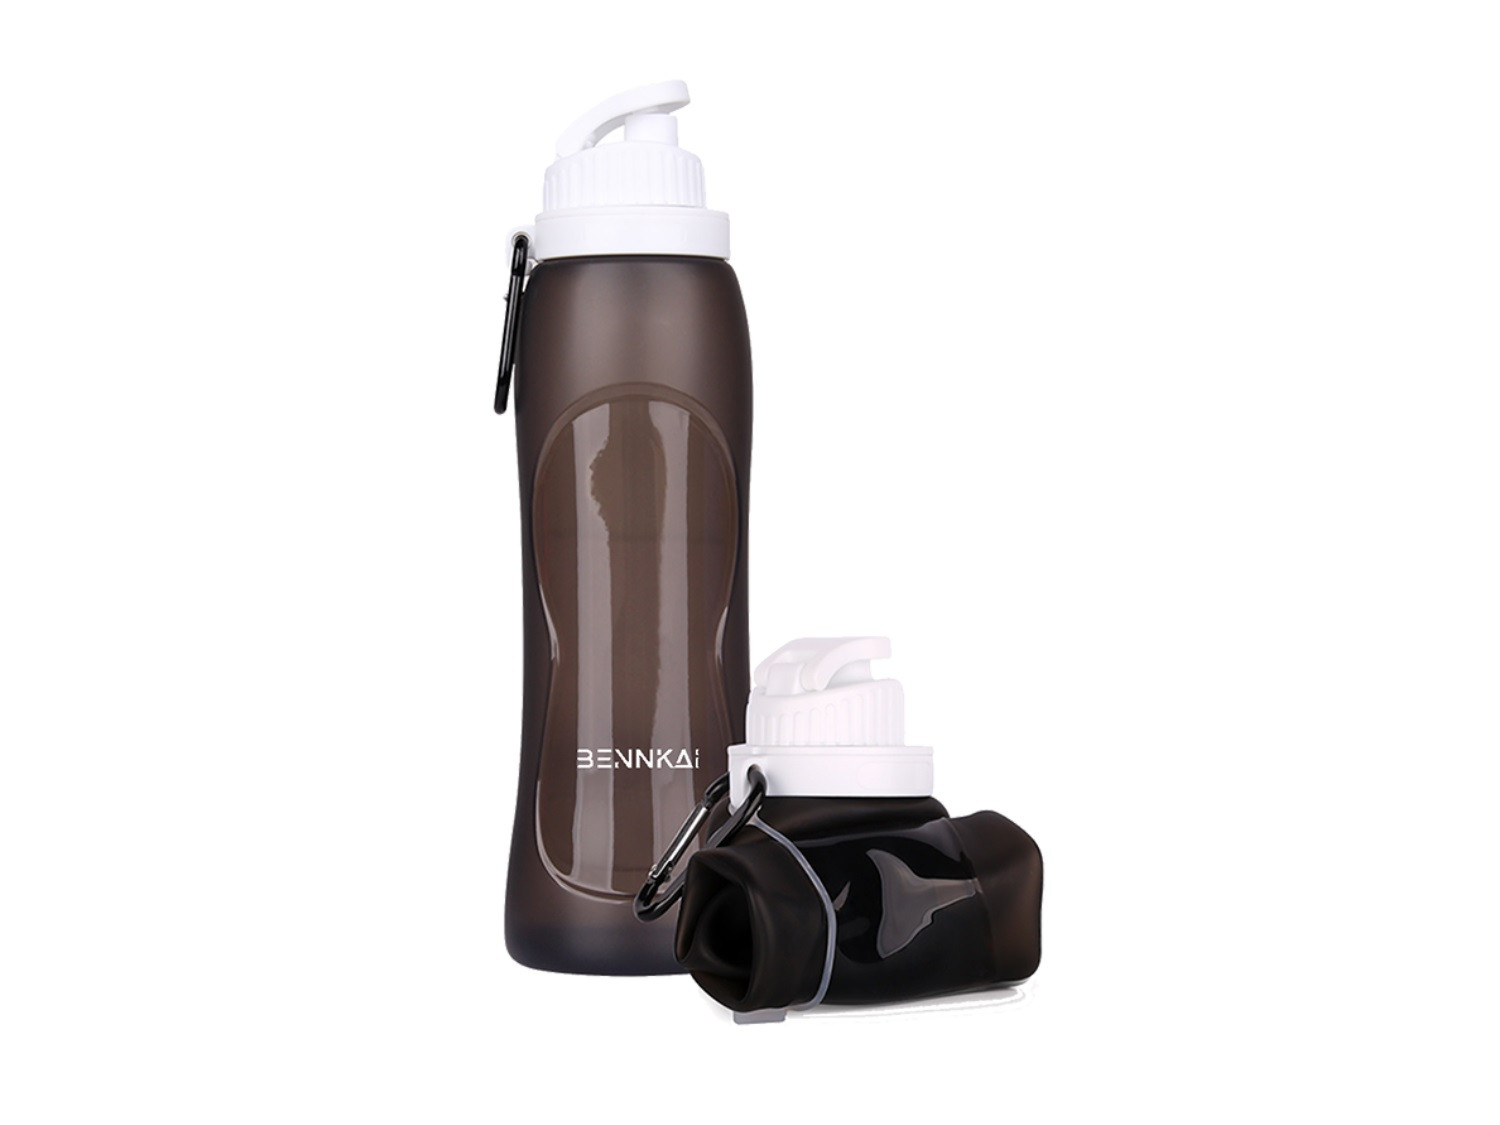 Bennkai Collapsible Water Bottle